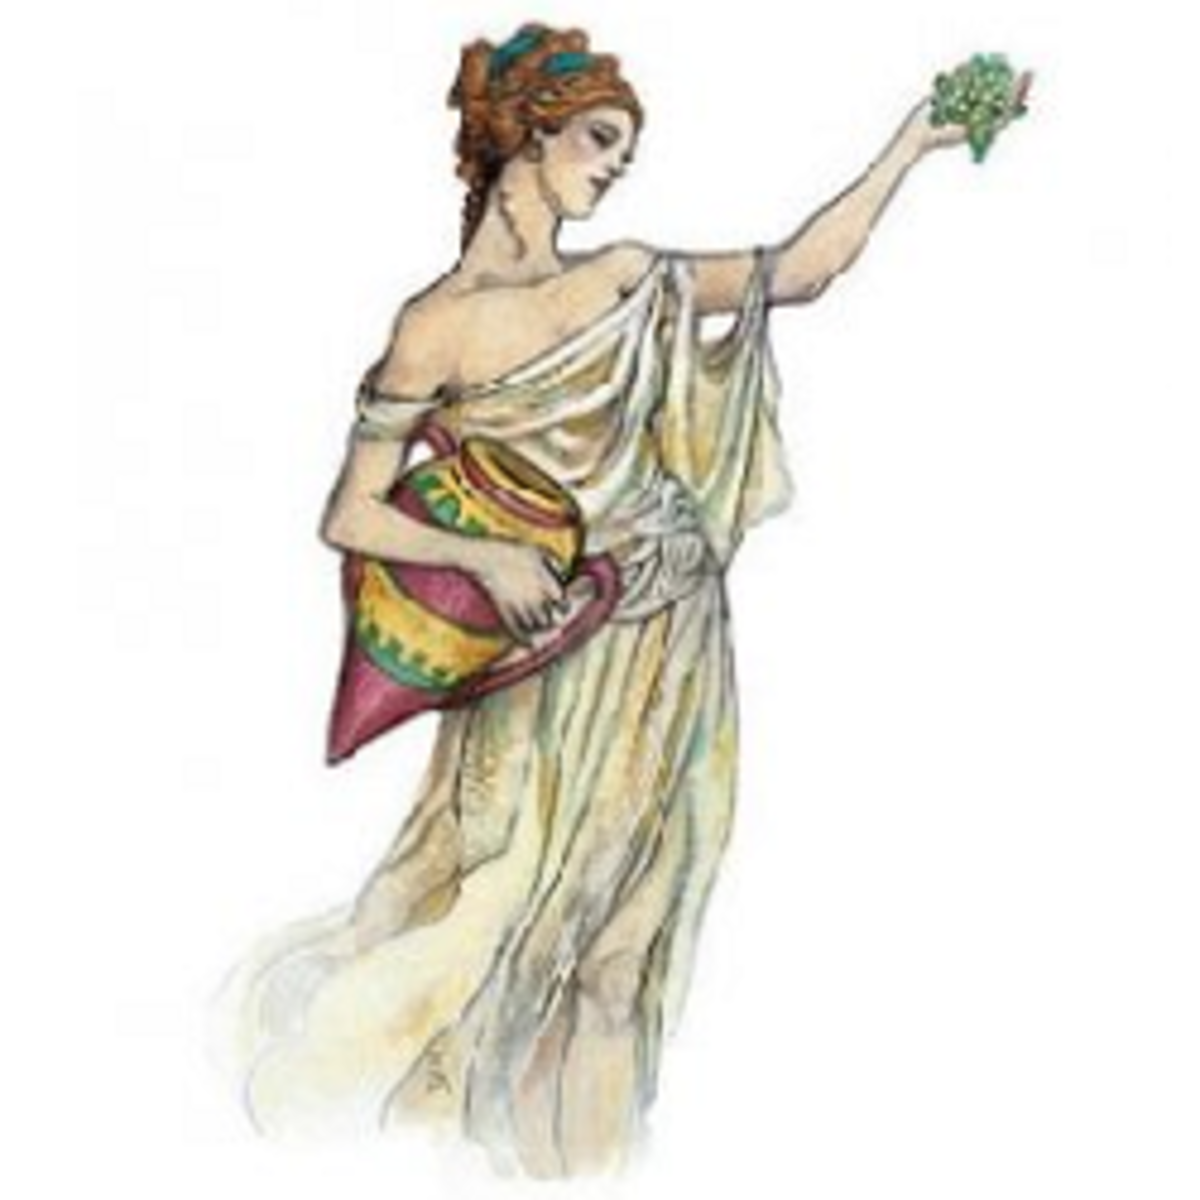 Hestia, Ancient Greek Goddess